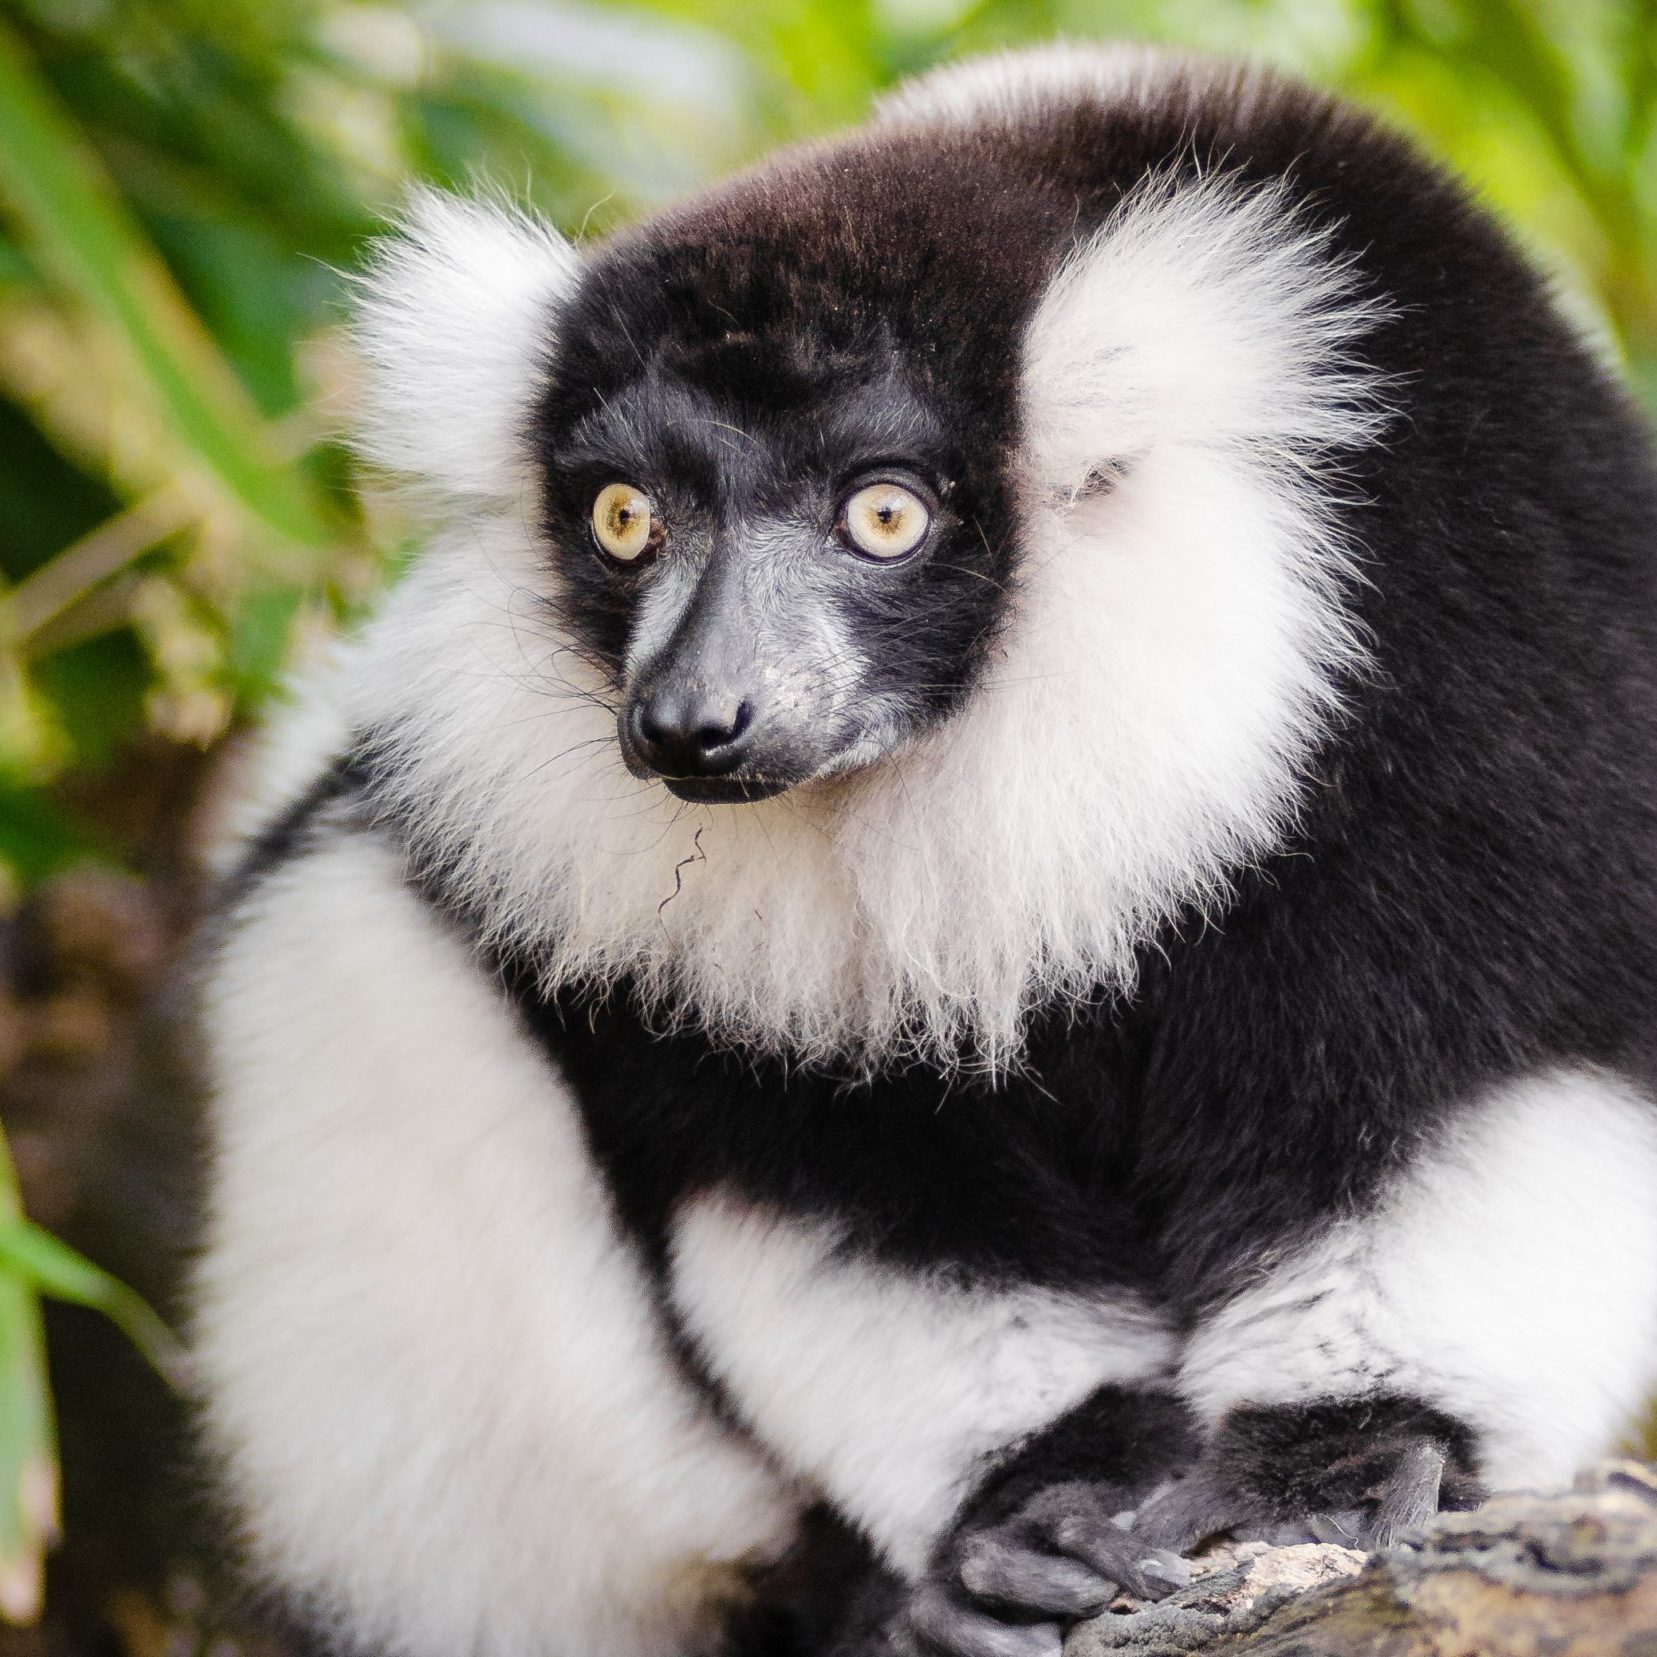 Black_and_white_ruffed_lemur_of_the_genus_Varecia